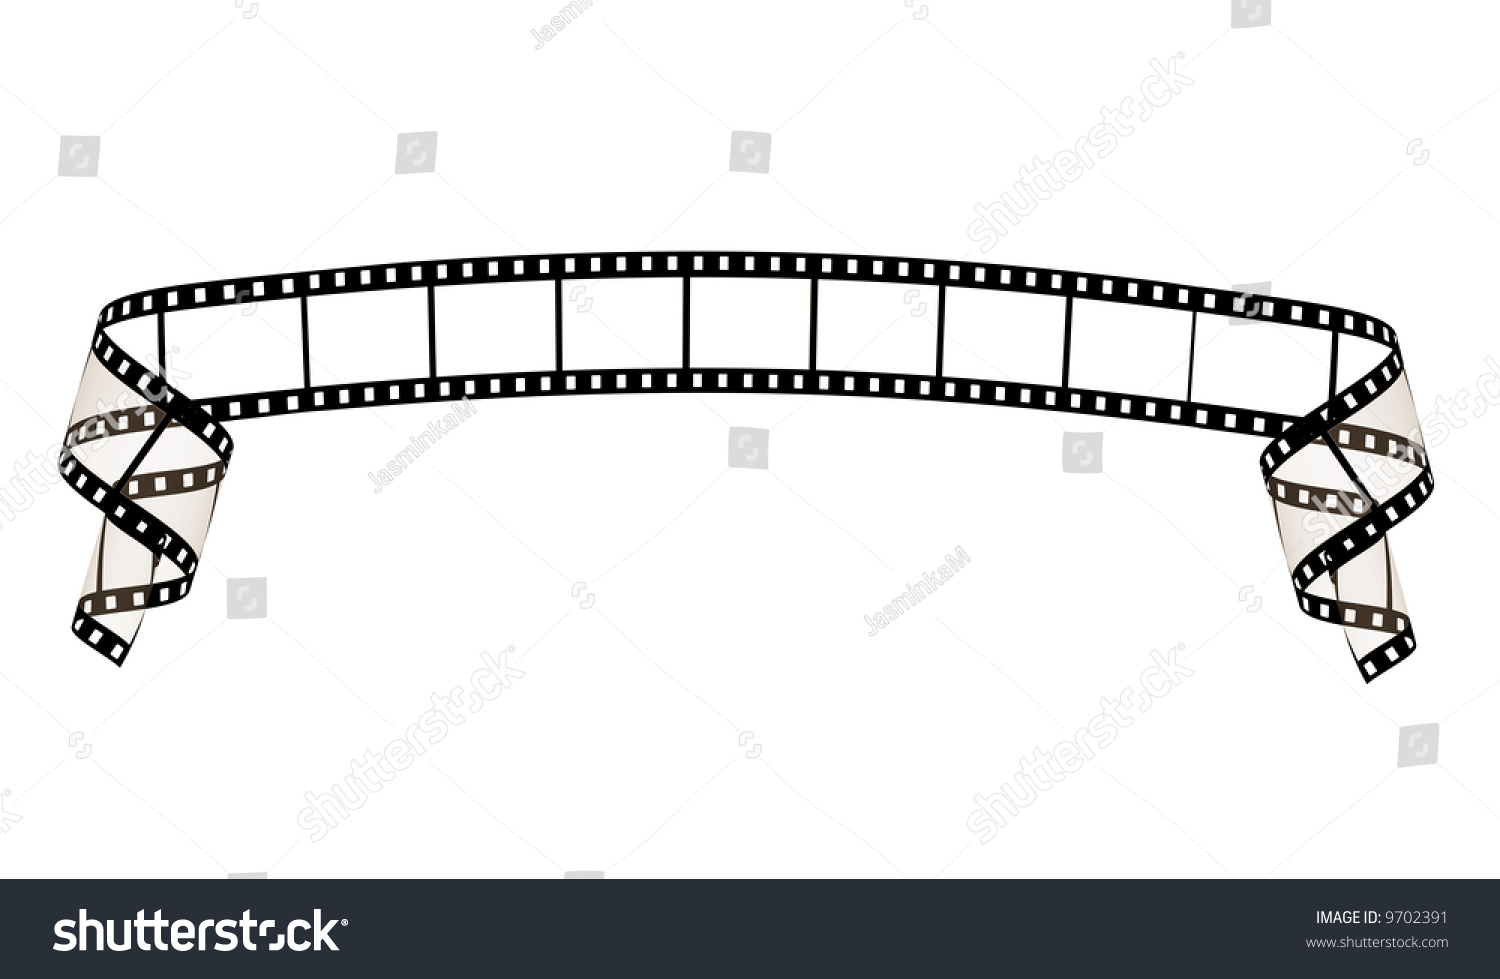 Line Art Ribbon : Film strip ribbon stock illustration 9702391 shutterstock